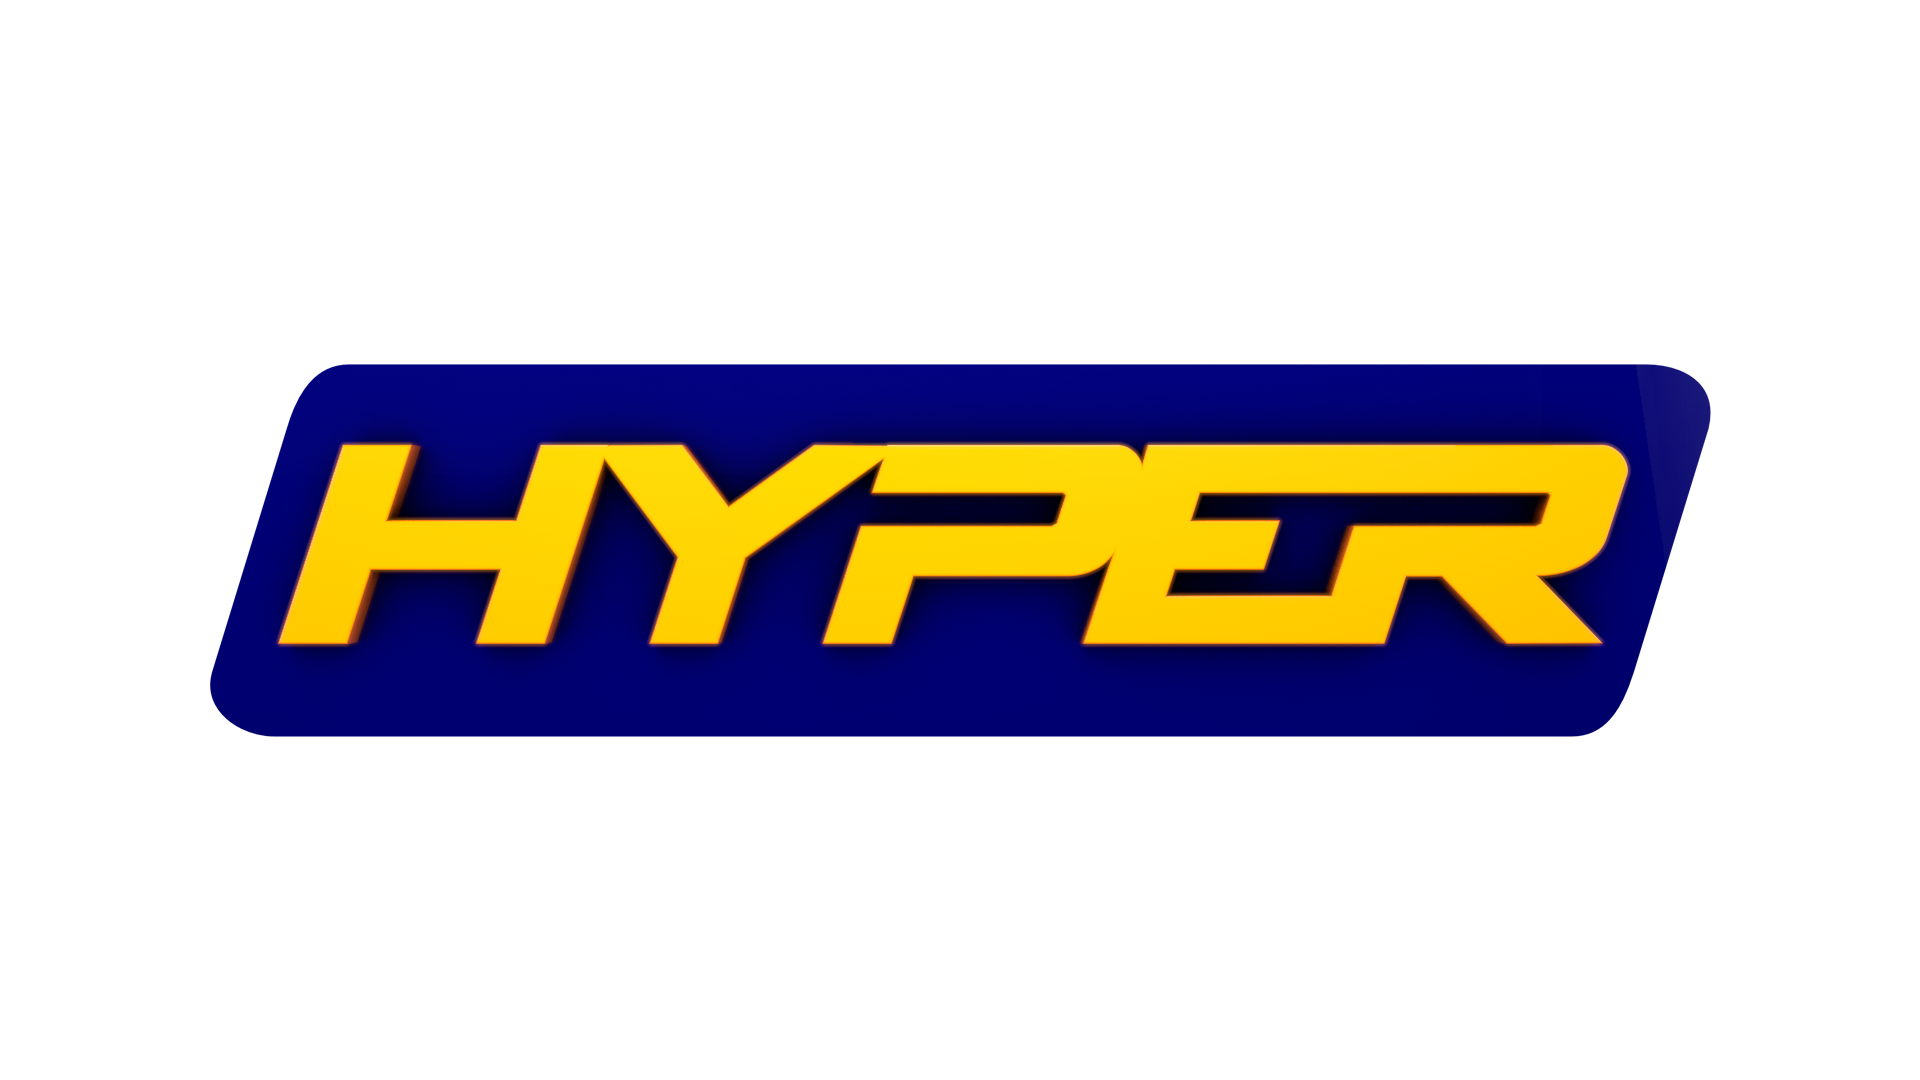 Hyper Tv Channel Wikipedia